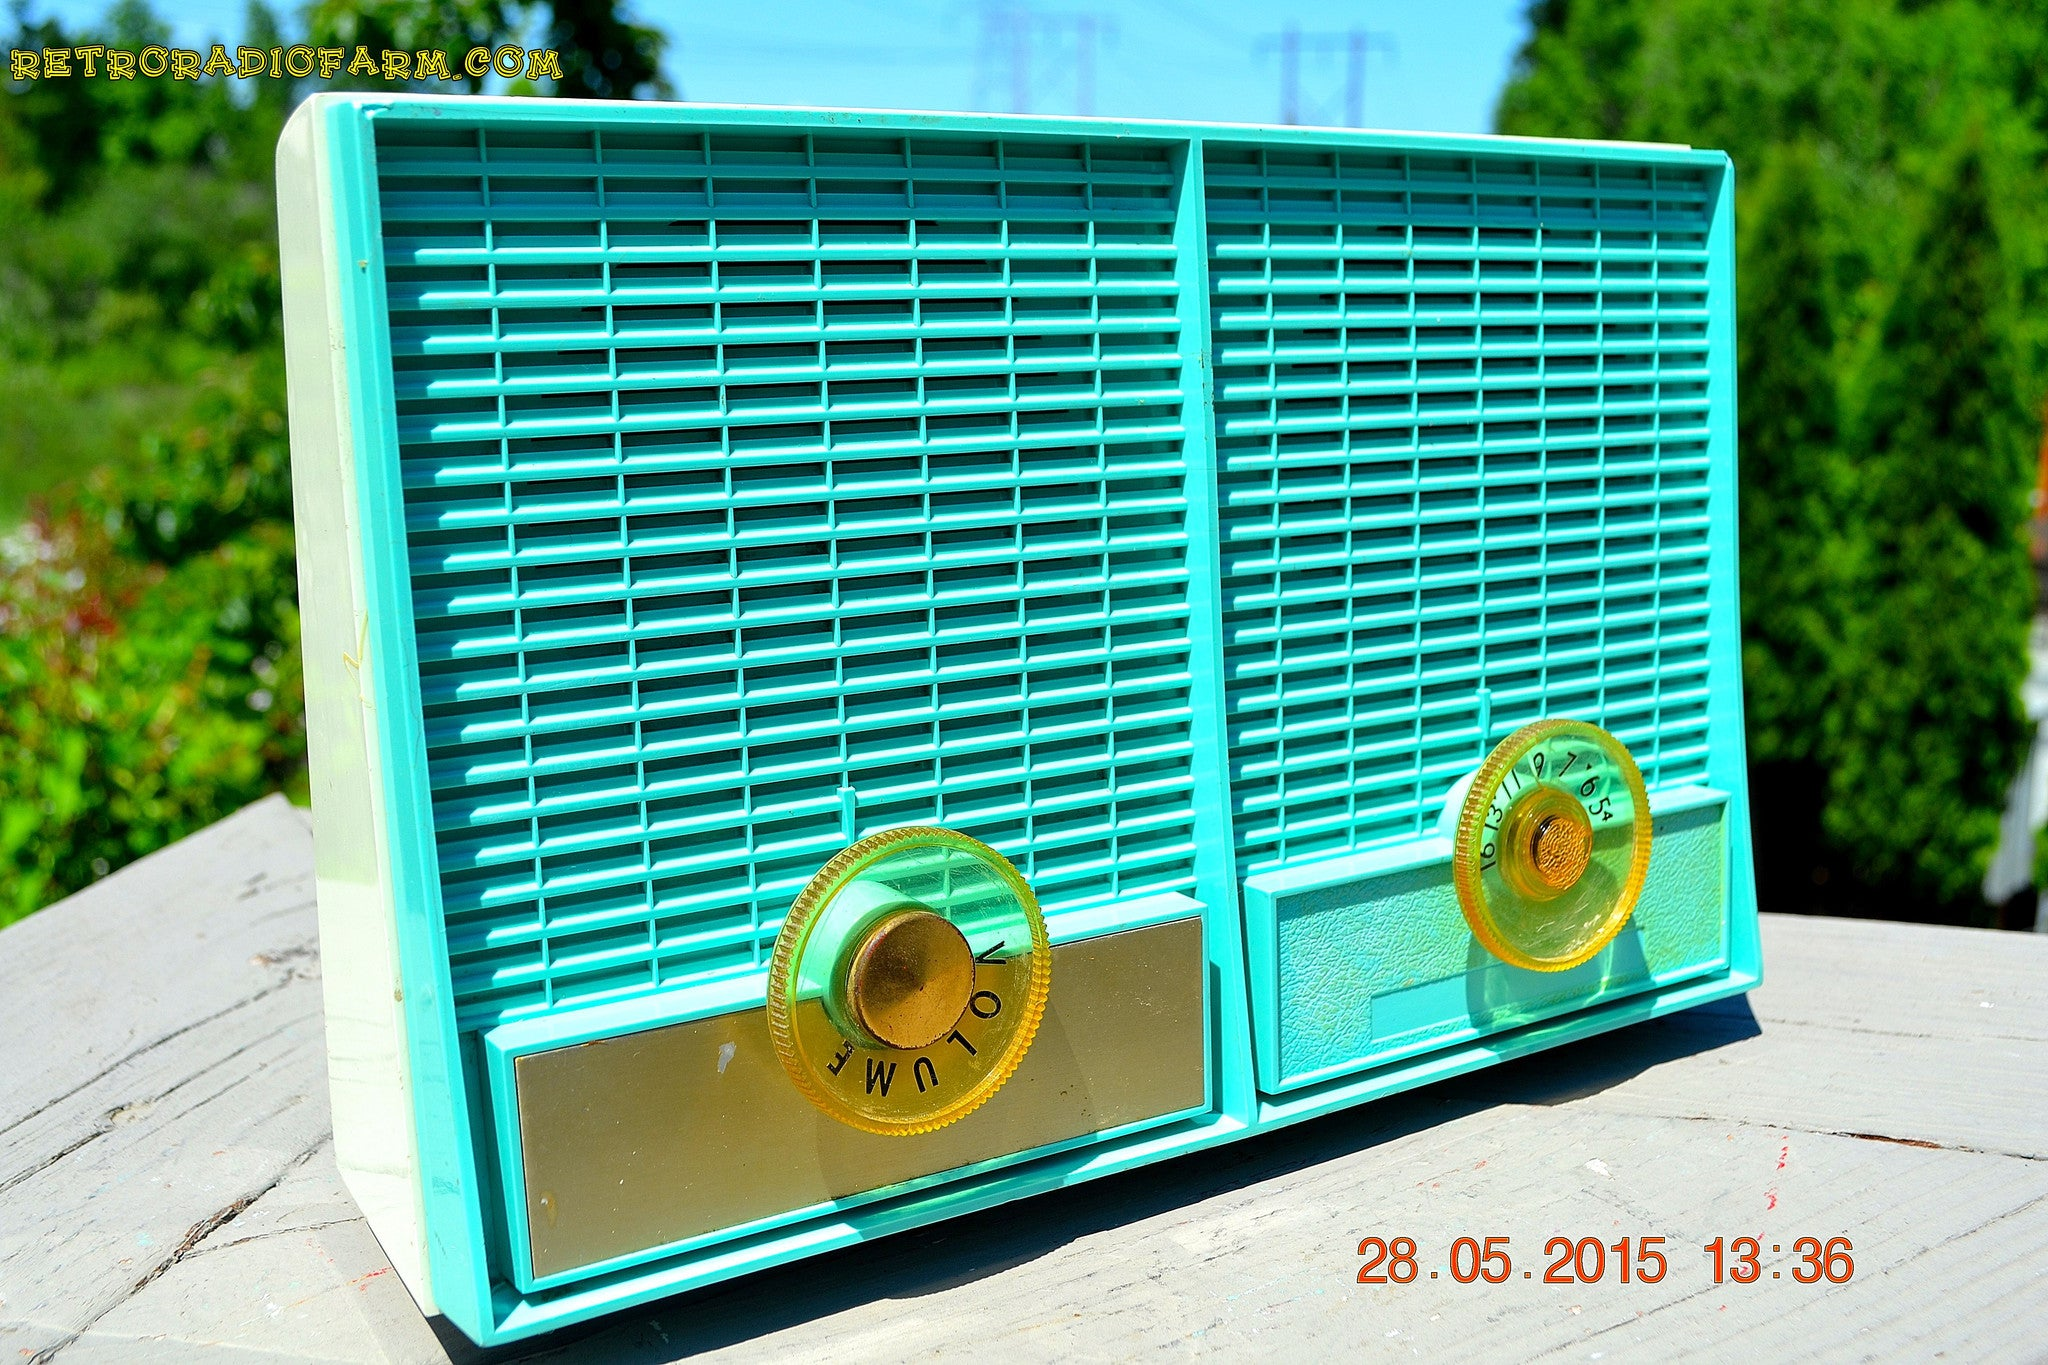 SOLD! - June 8, 2015 - CERULEAN Mid Century Retro Jetsons Vintage 1957 Philco M-872-124 AM Tube Radio Works! - [product_type} - Philco - Retro Radio Farm